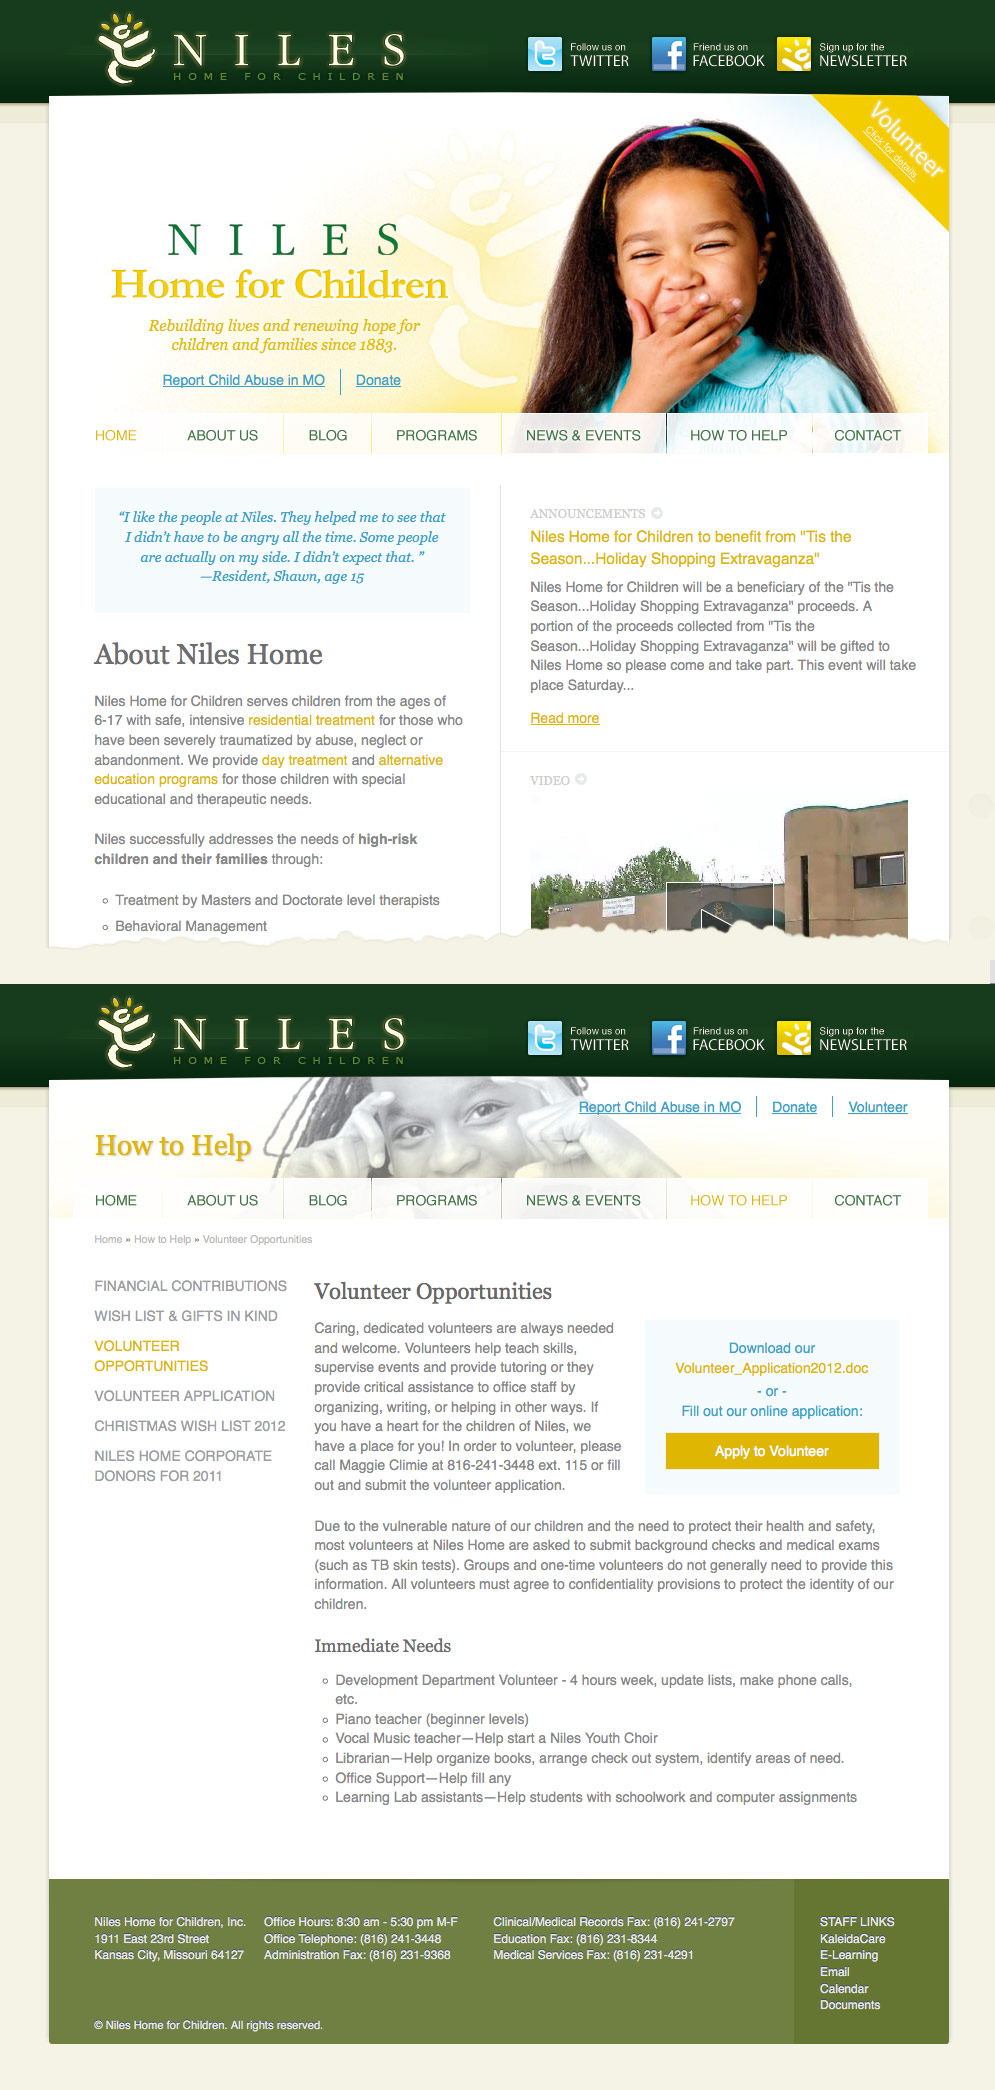 Niles Home for Children website